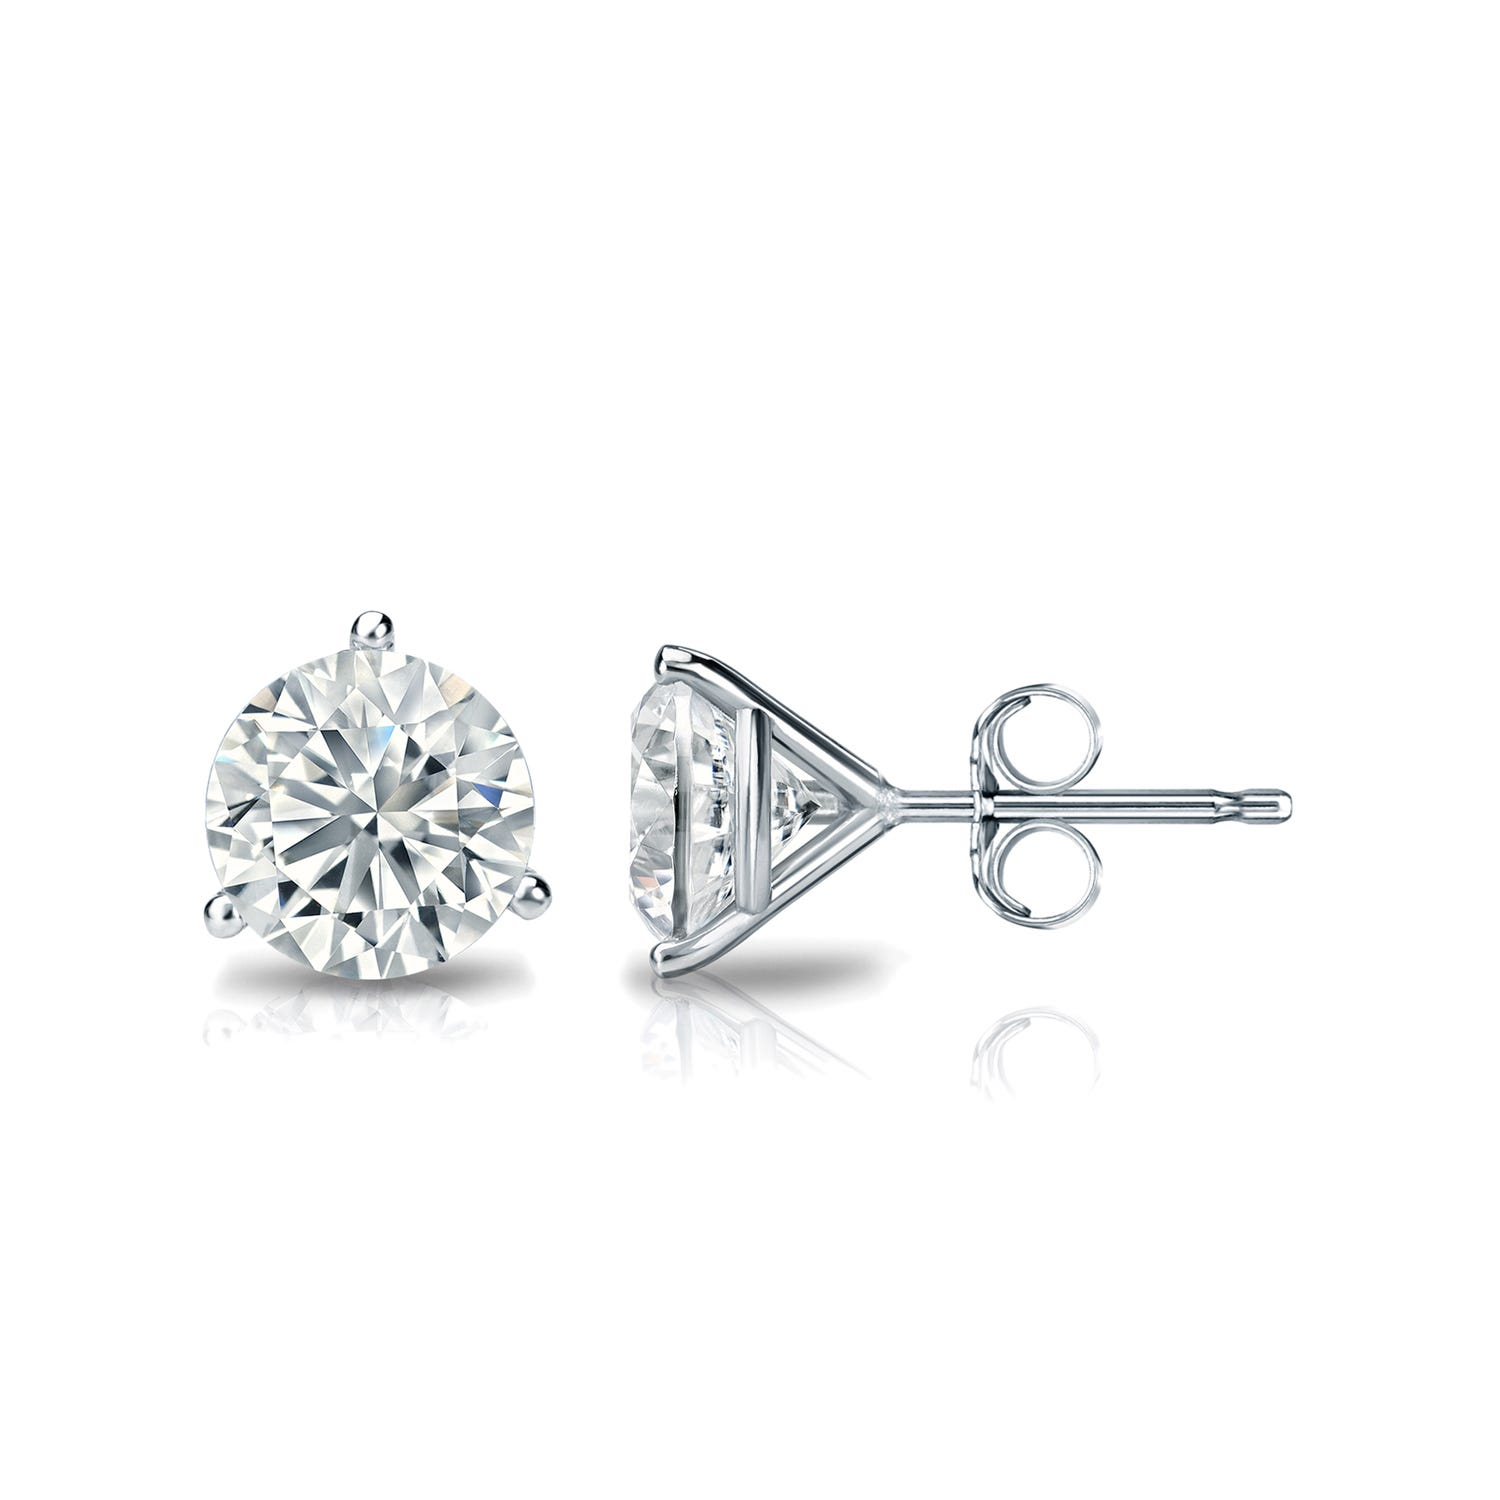 1 CTTW Round Diamond Solitaire Stud Earrings IJ I2 in Platinum IGI Certified 3-Prong Setting